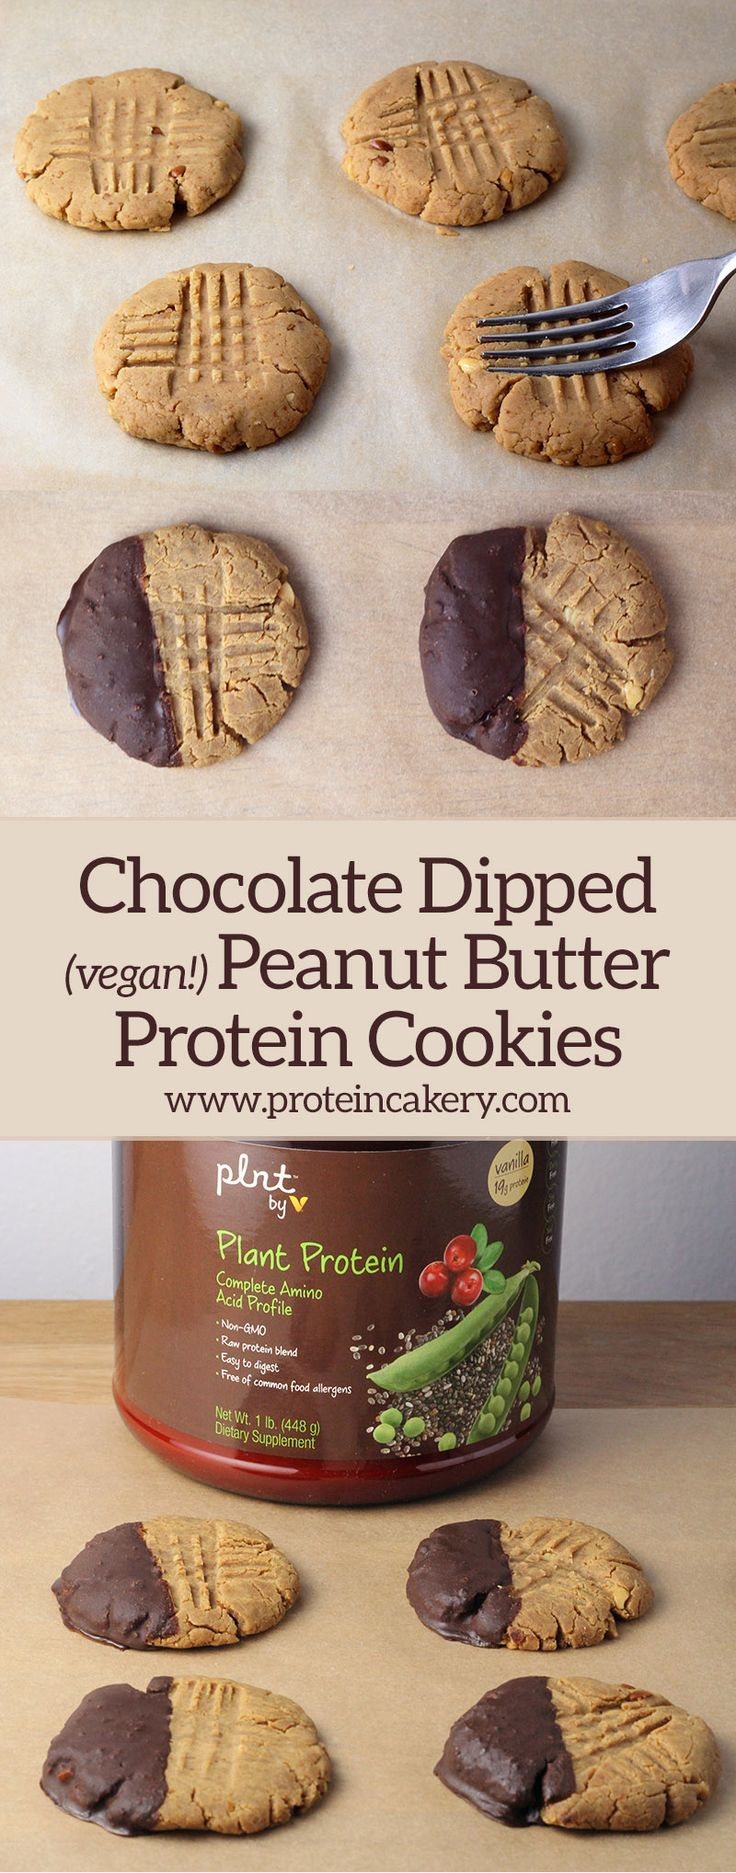 Chocolate Dipped Peanut Butter Protein Cookies - vegan, gluten free, low carb - Andréa's Protein Cakery